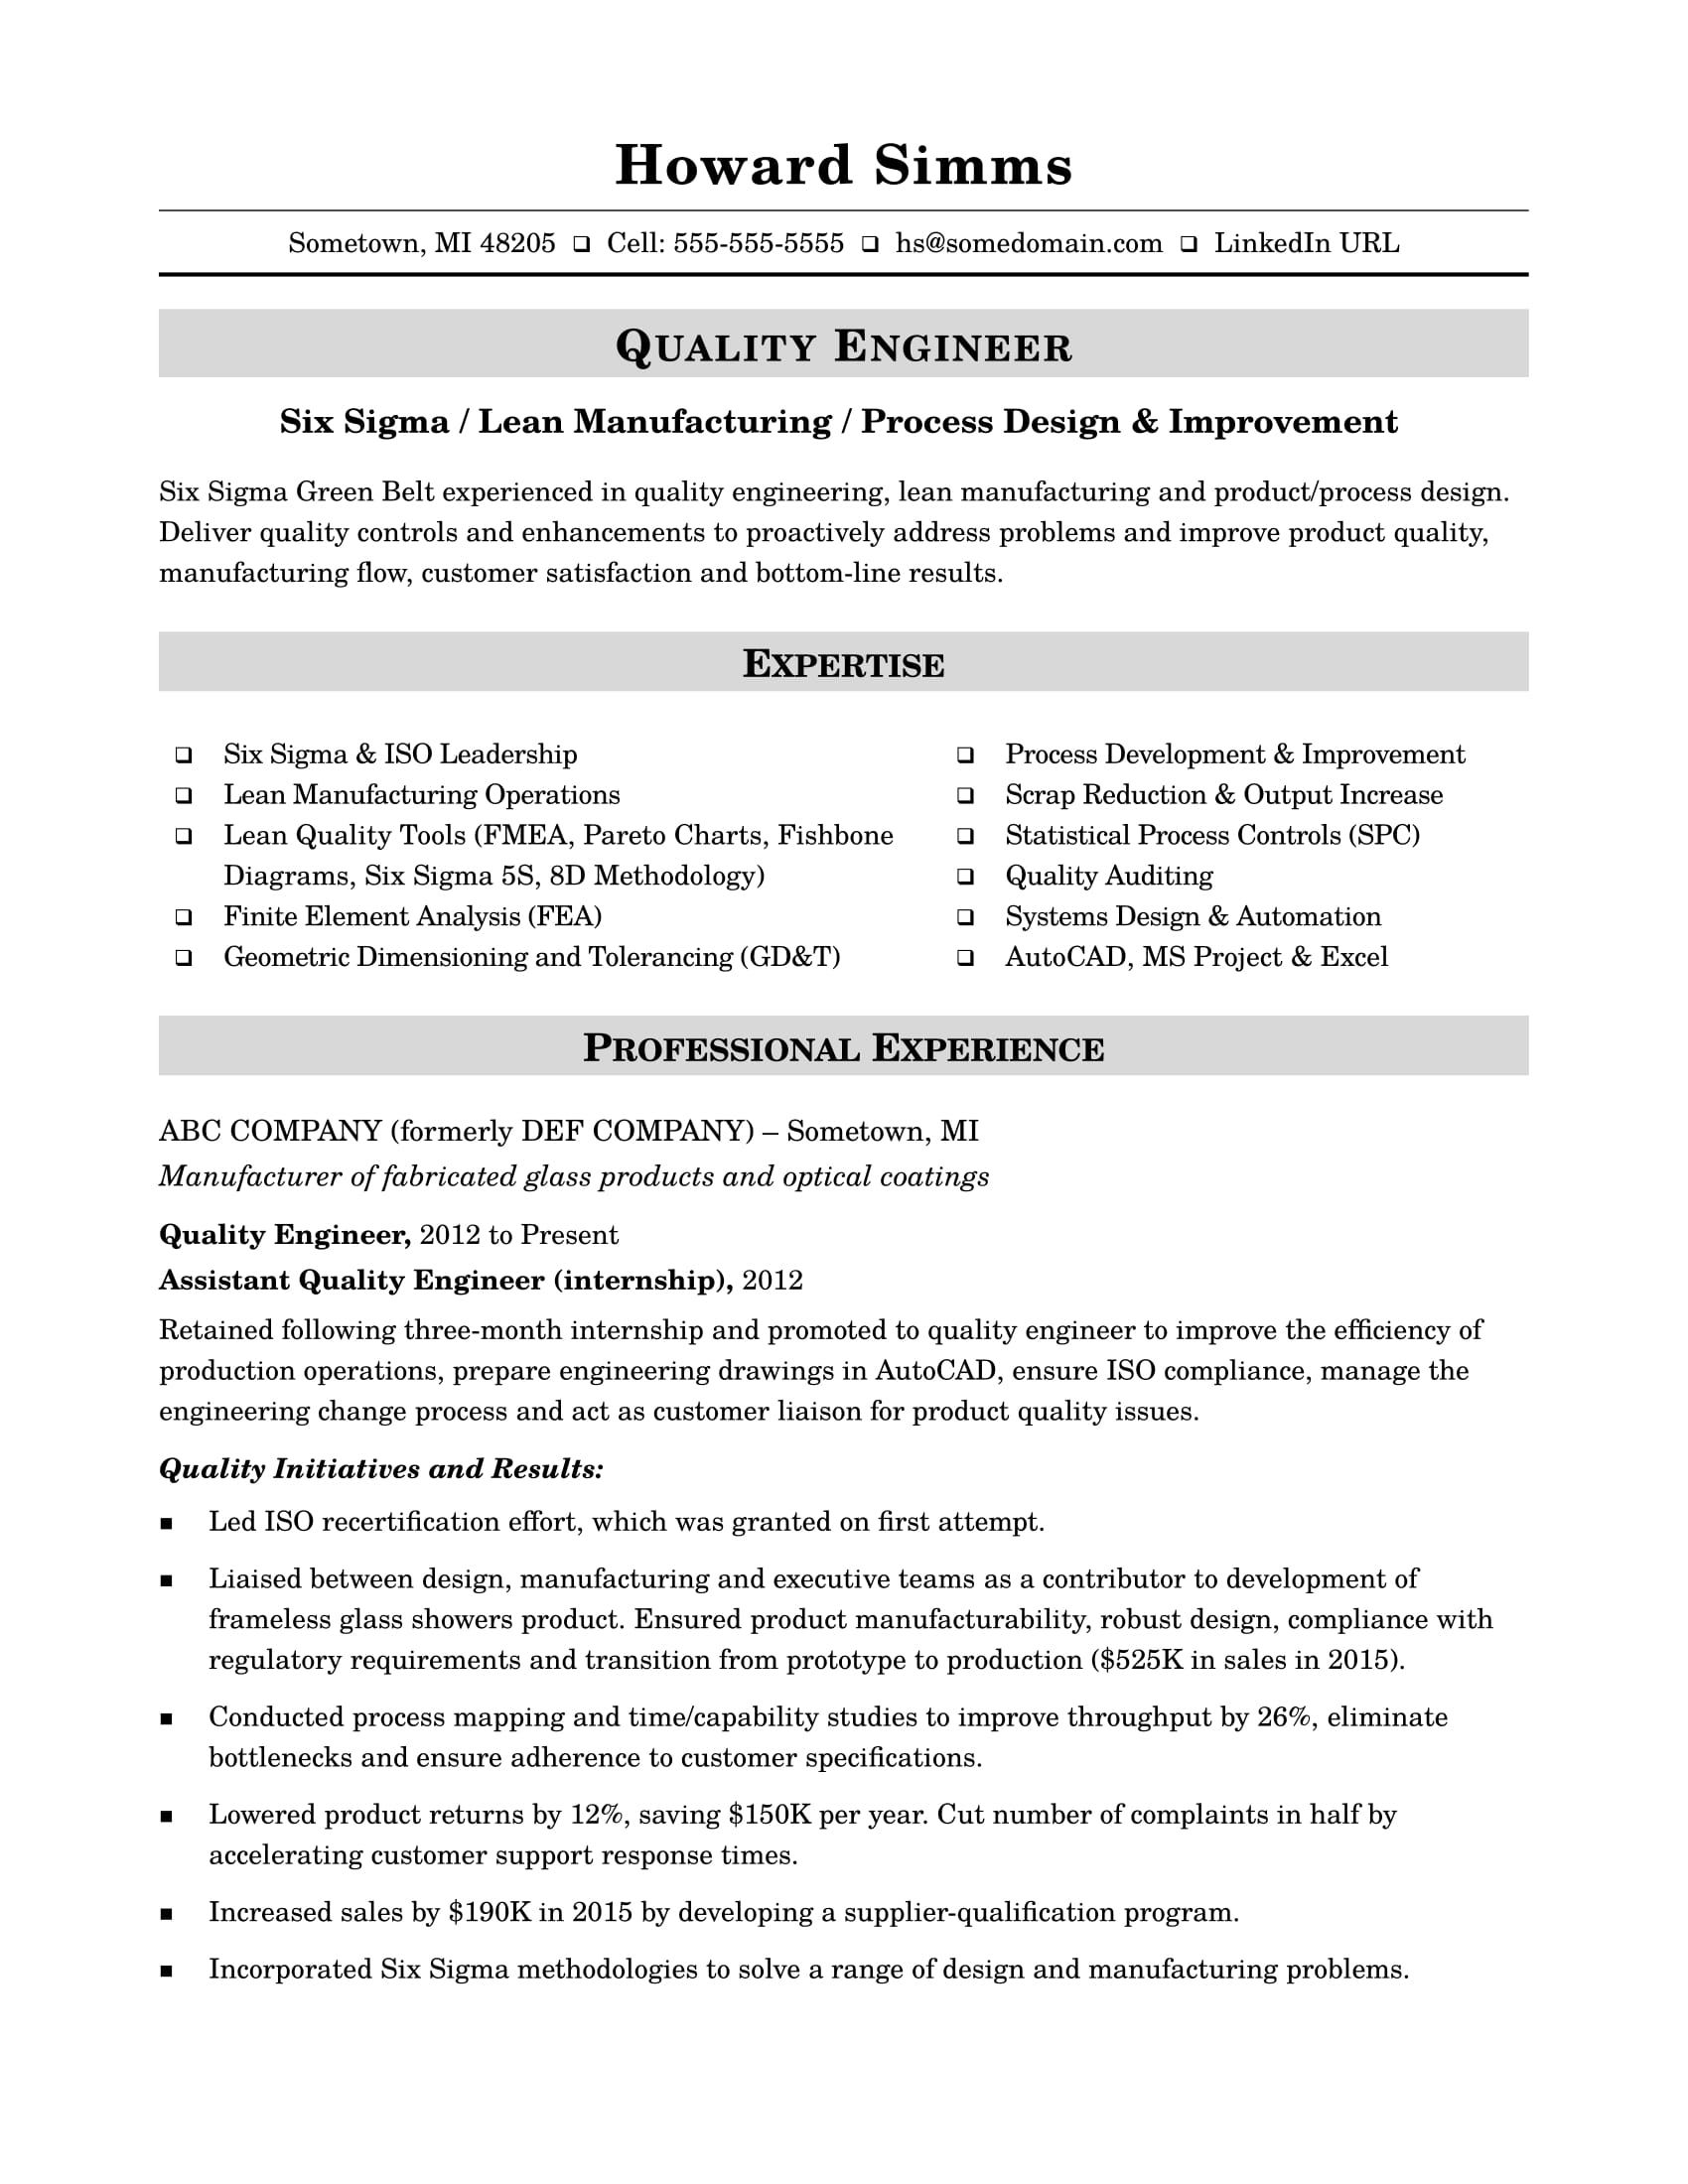 sample resume for midlevel quality engineer engineering process design example of ojt Resume Process Design Engineer Resume Sample